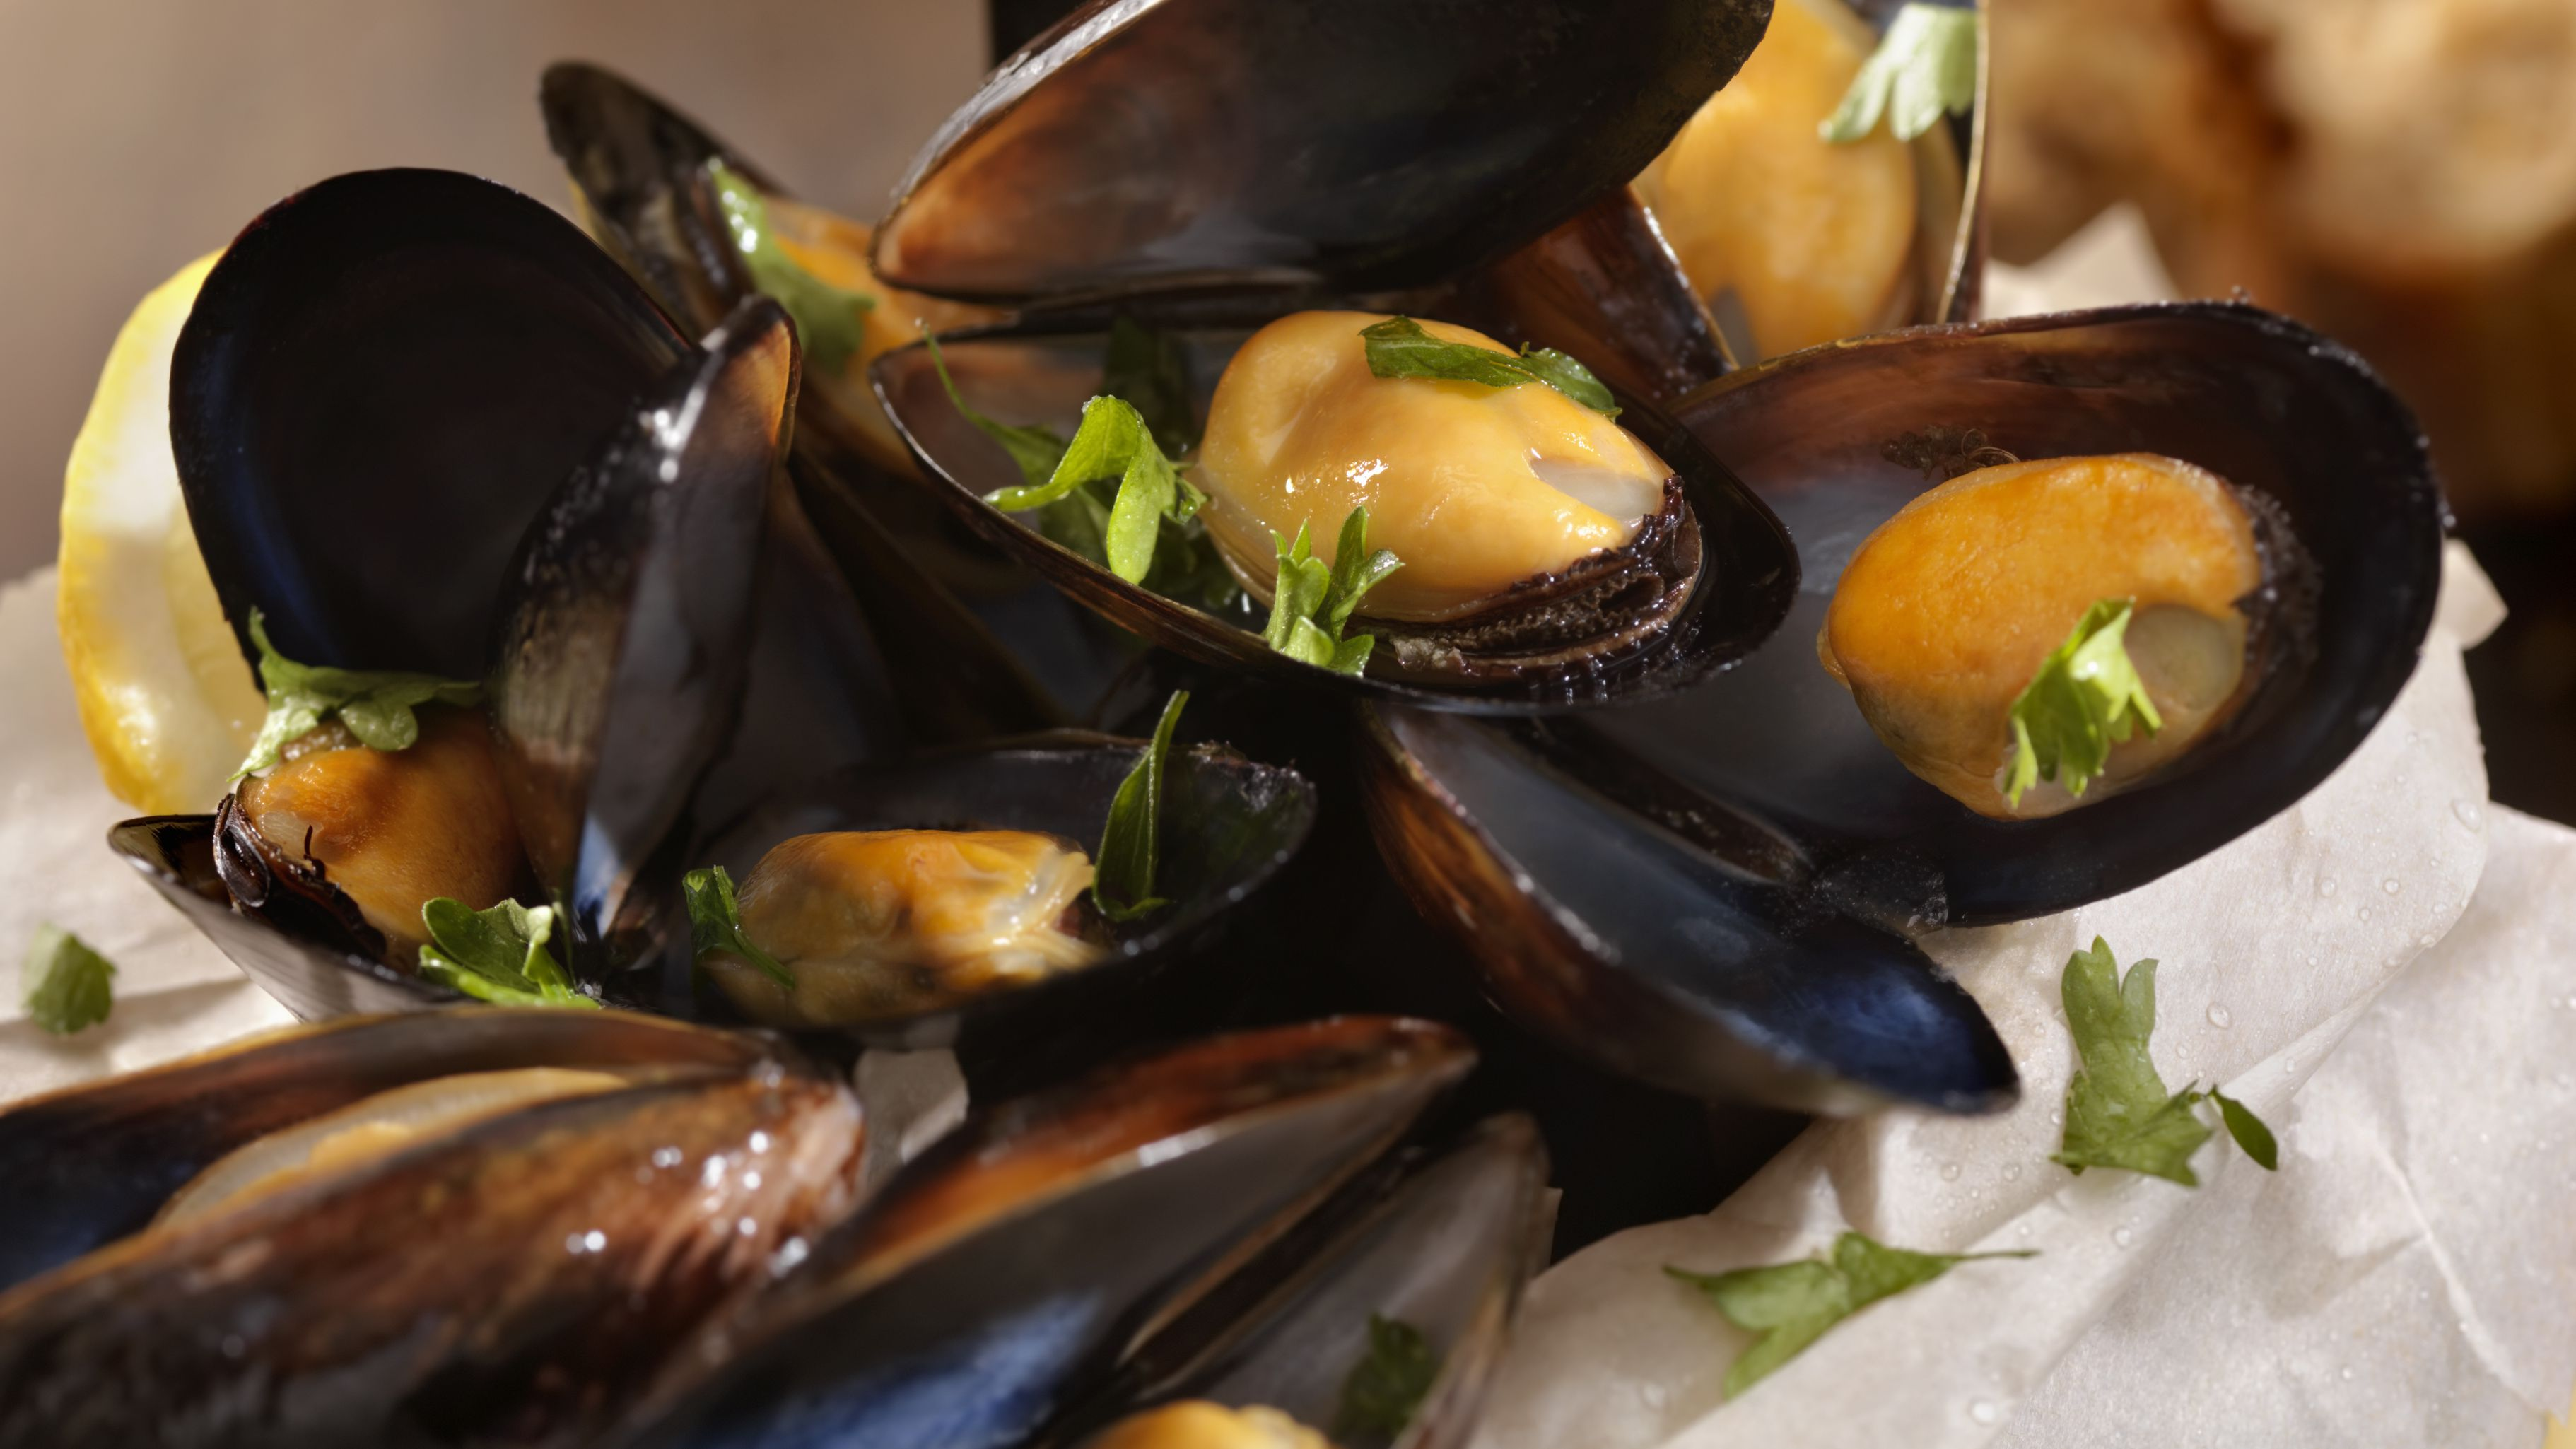 Mussels-different shapes